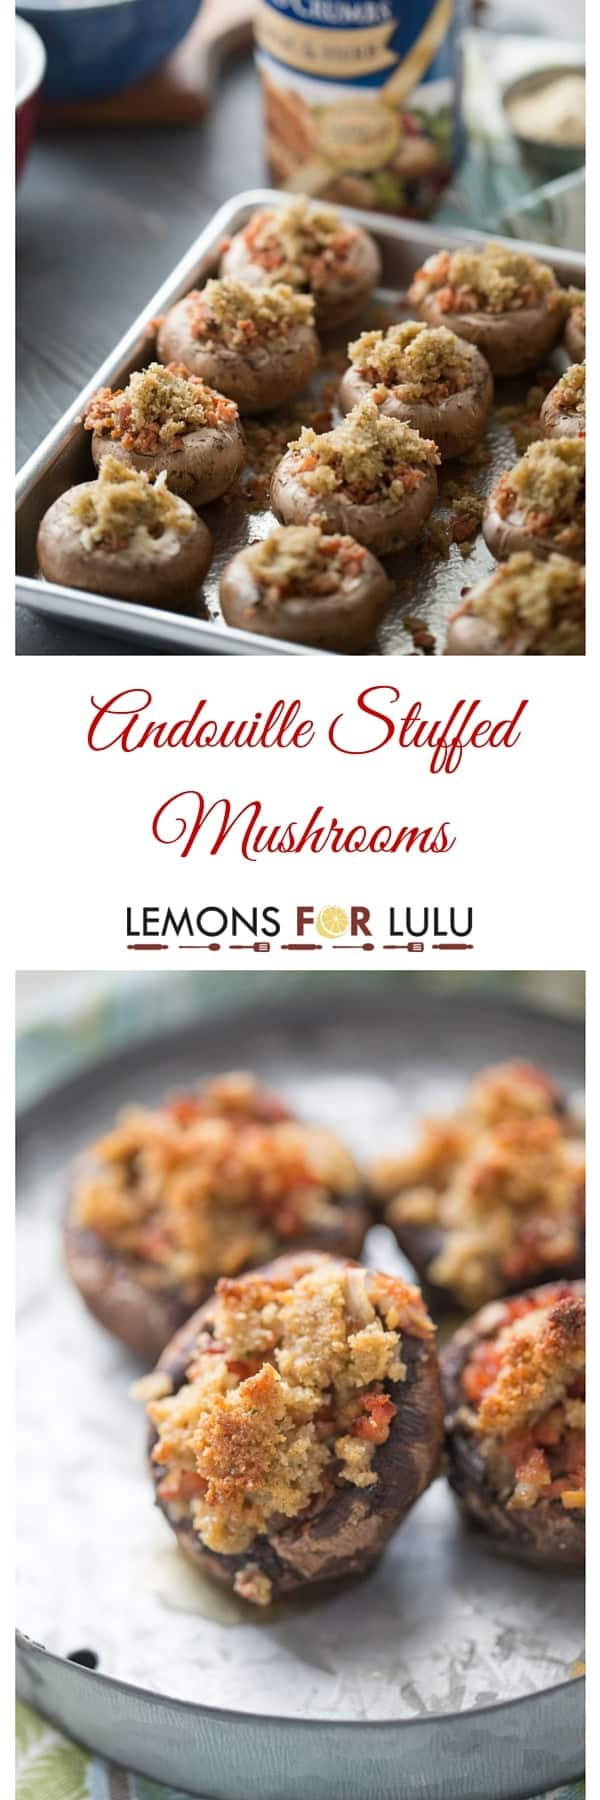 This easy stuffed mushroom recipe is easy and quick! Andouille sausage, veggies and cheese fill mushrooms caps then get topped with a buttery breadcrumb topping! This is party food at it's best! lemonsforlulu.com